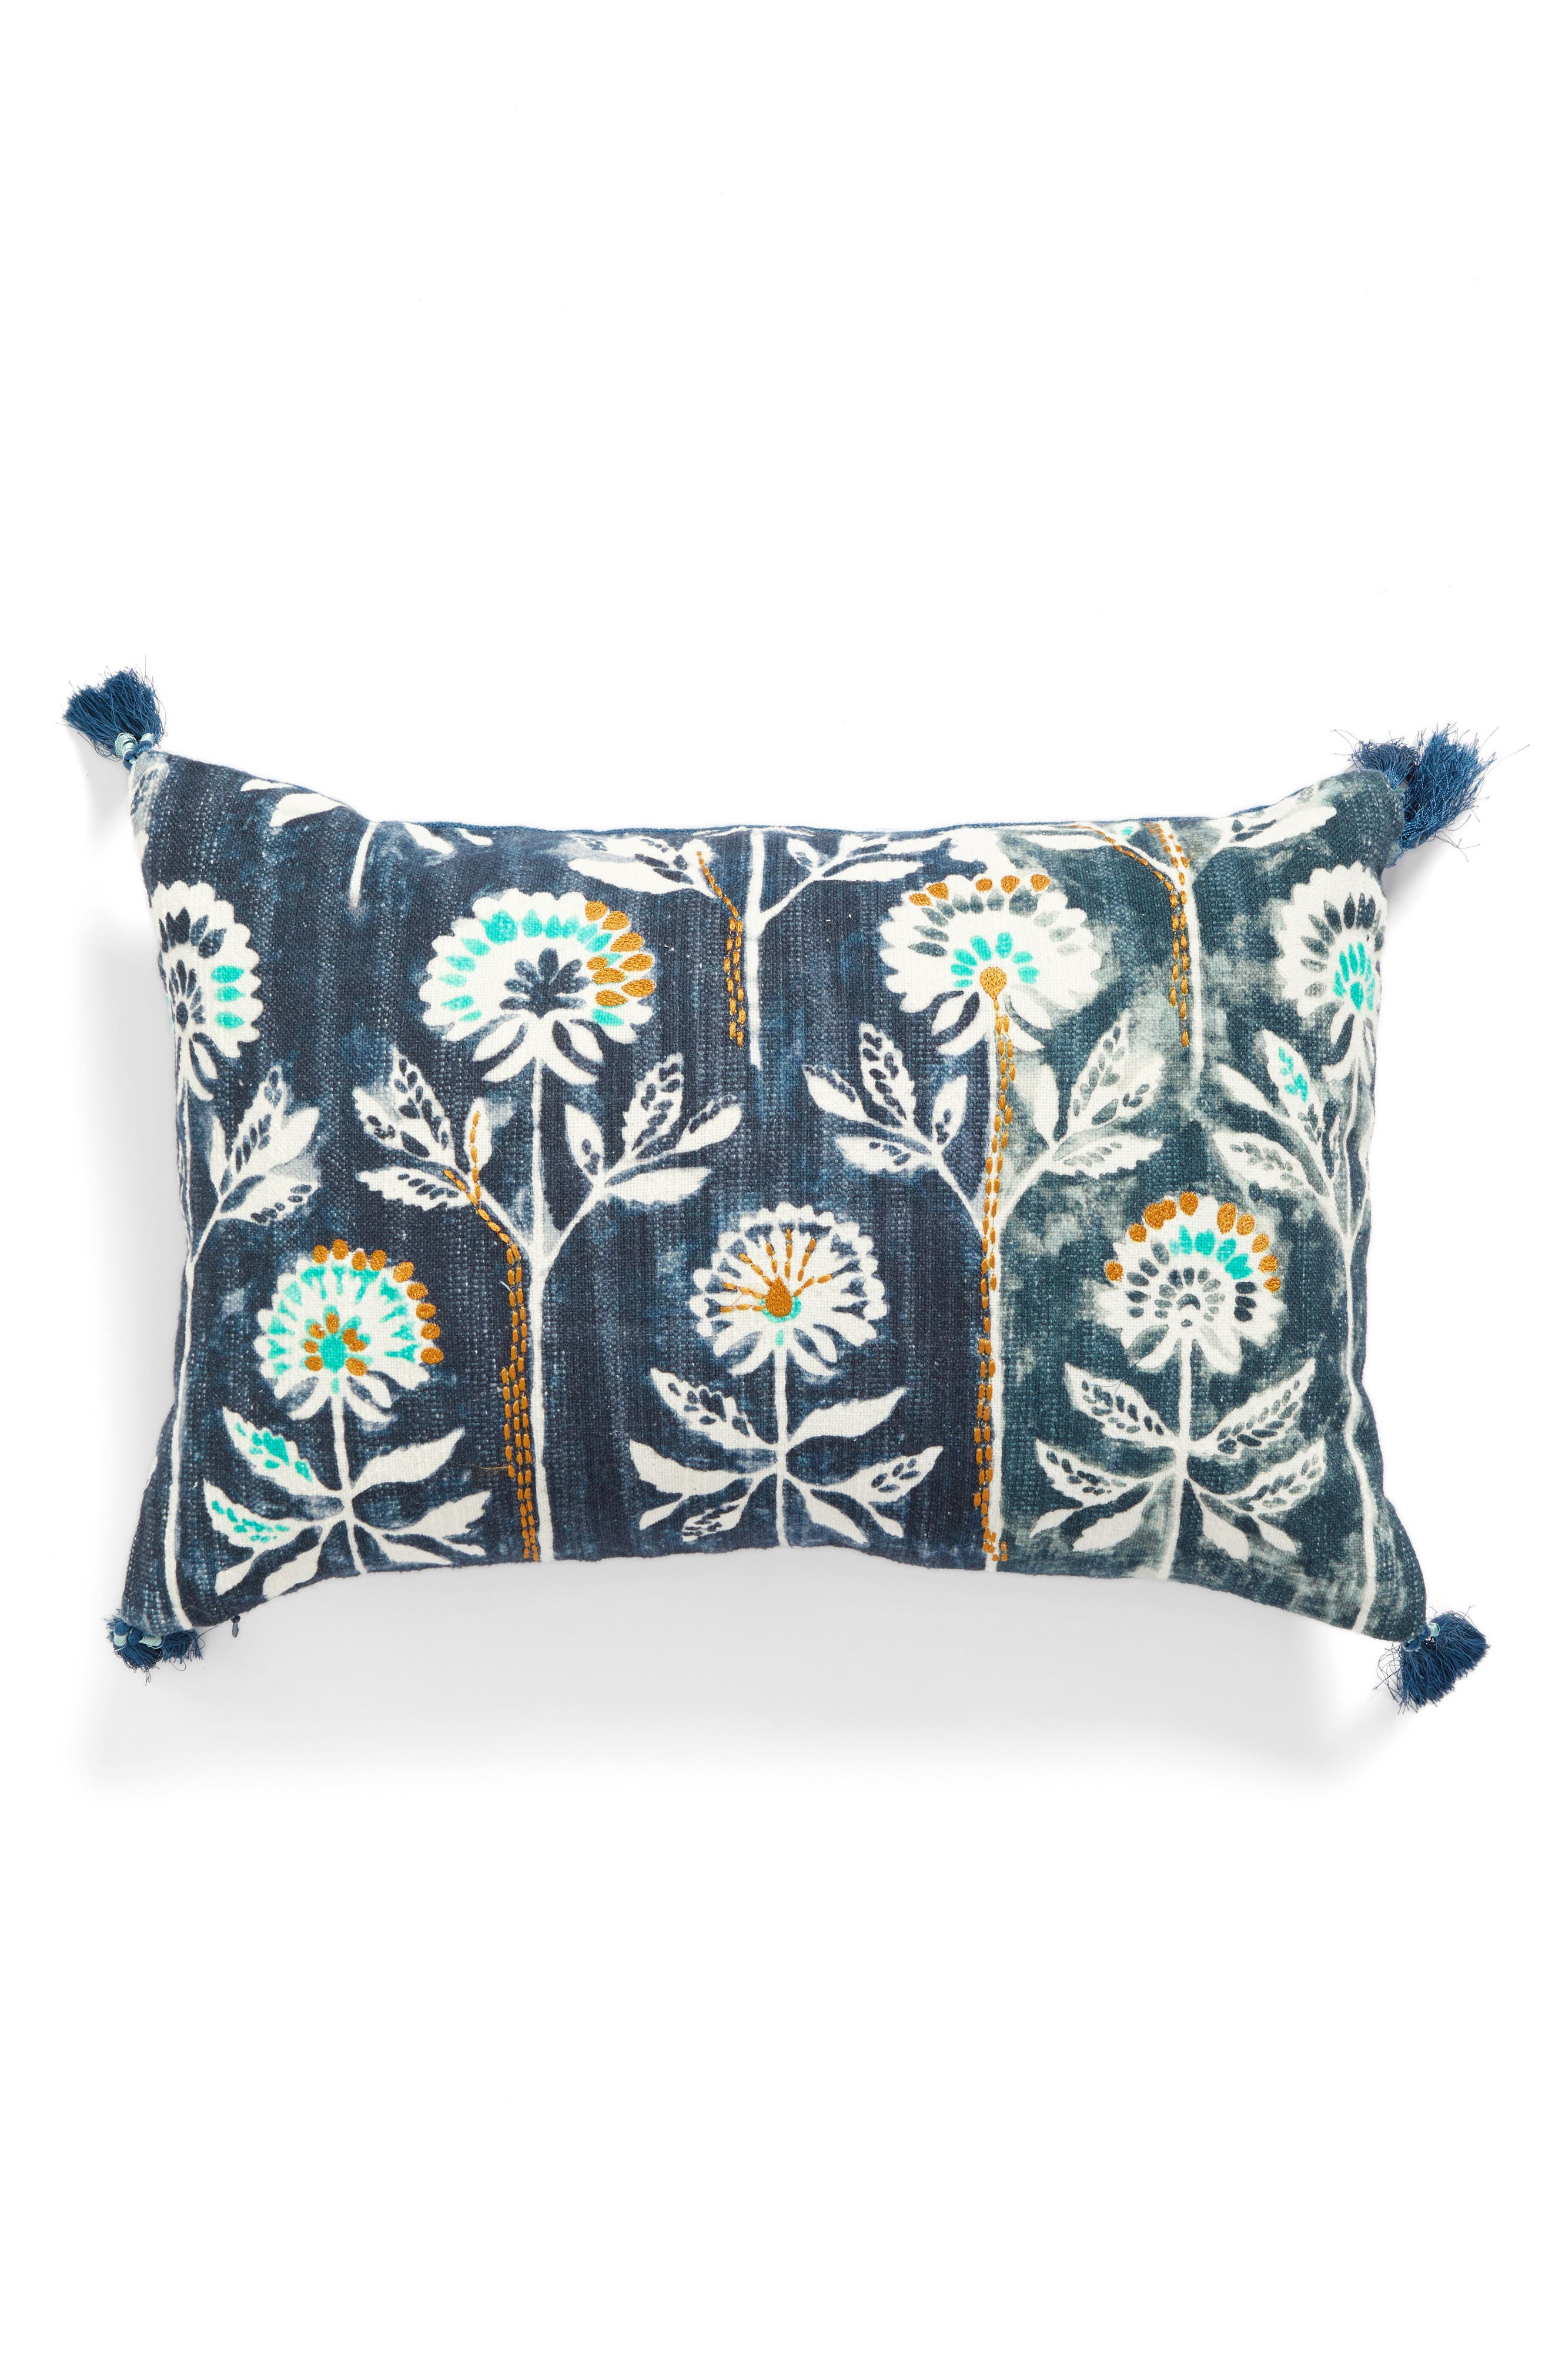 Alternate Image 1 Selected - Nordstrom at Home Watercolor Floral Accent Pillow